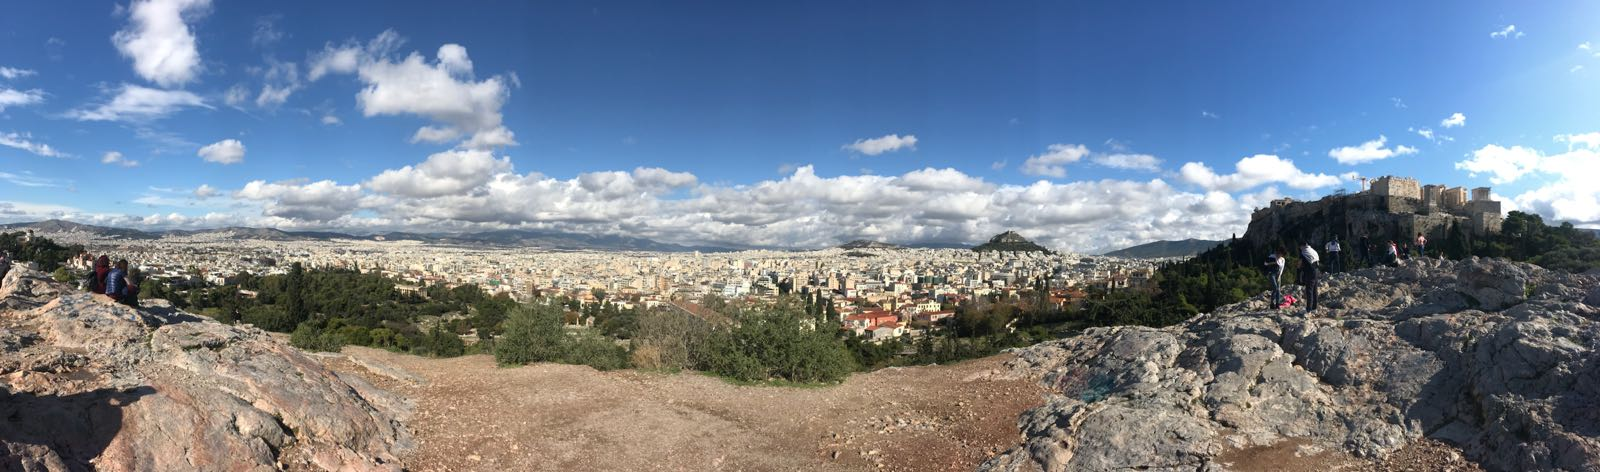 Panorama of Athens from a rocky hill next to the Acropolis